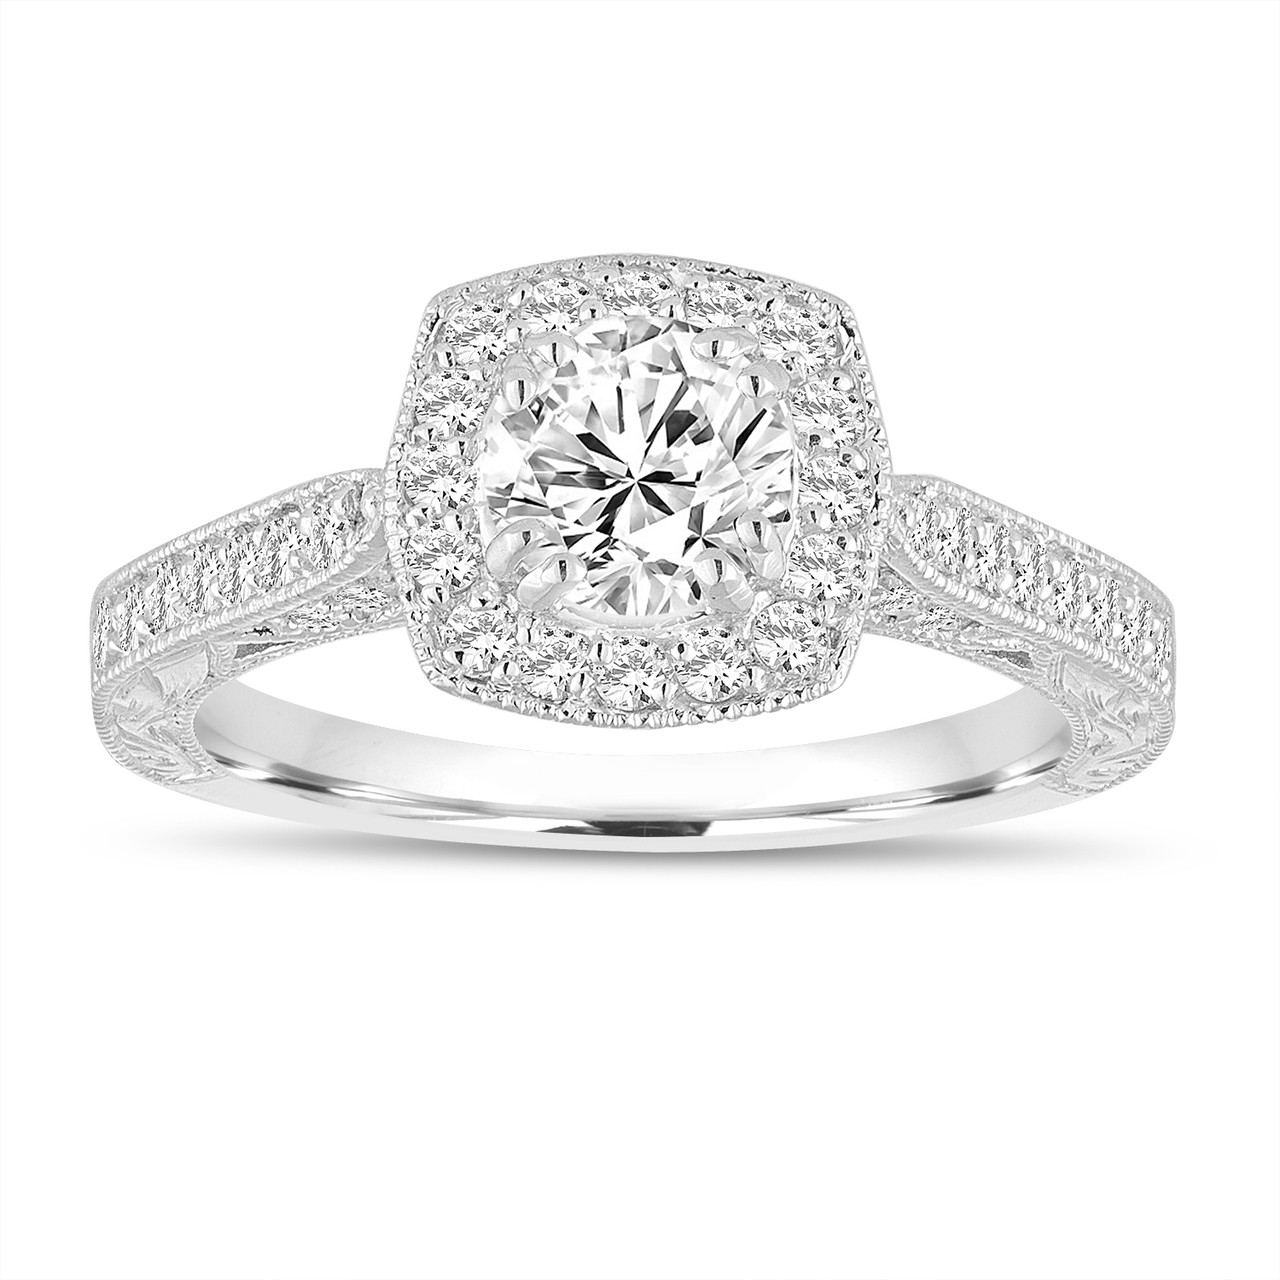 Engagement Rings In Which Hand: Platinum Diamond Engagement Ring, Hand Engraved Vintage